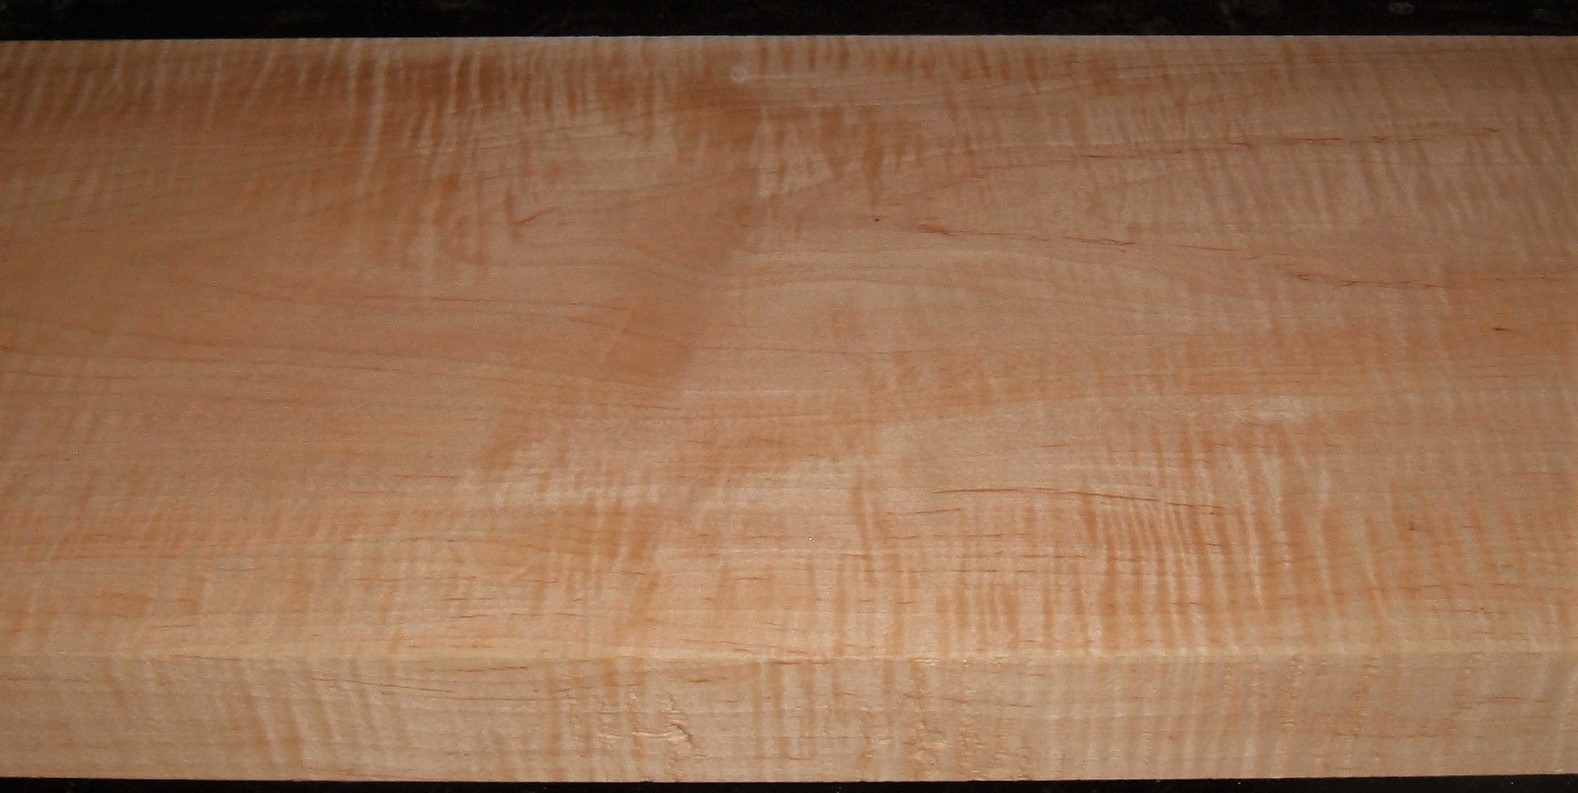 M2003-181JJ,  1-3/4x11-1/8x44, Curly Tiger Maple